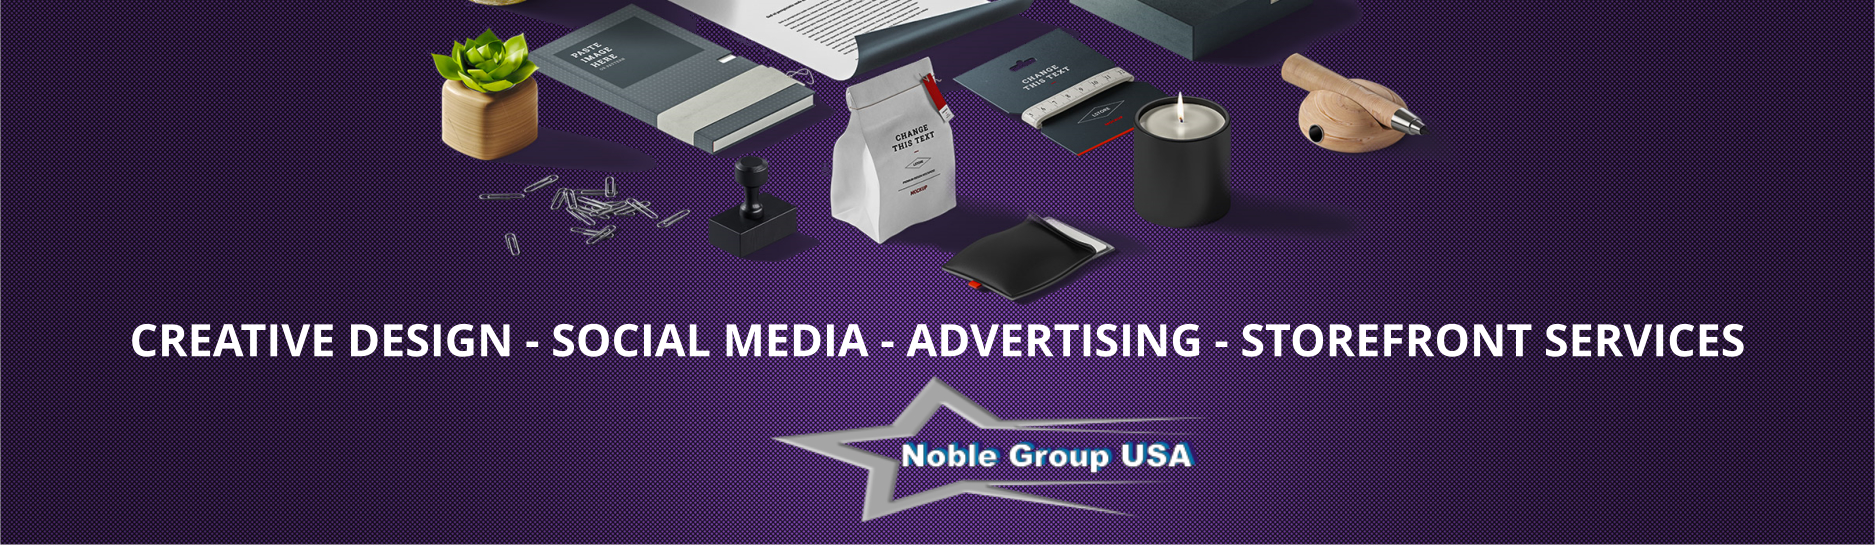 Noble Group USA - www.noblegroupusa.net